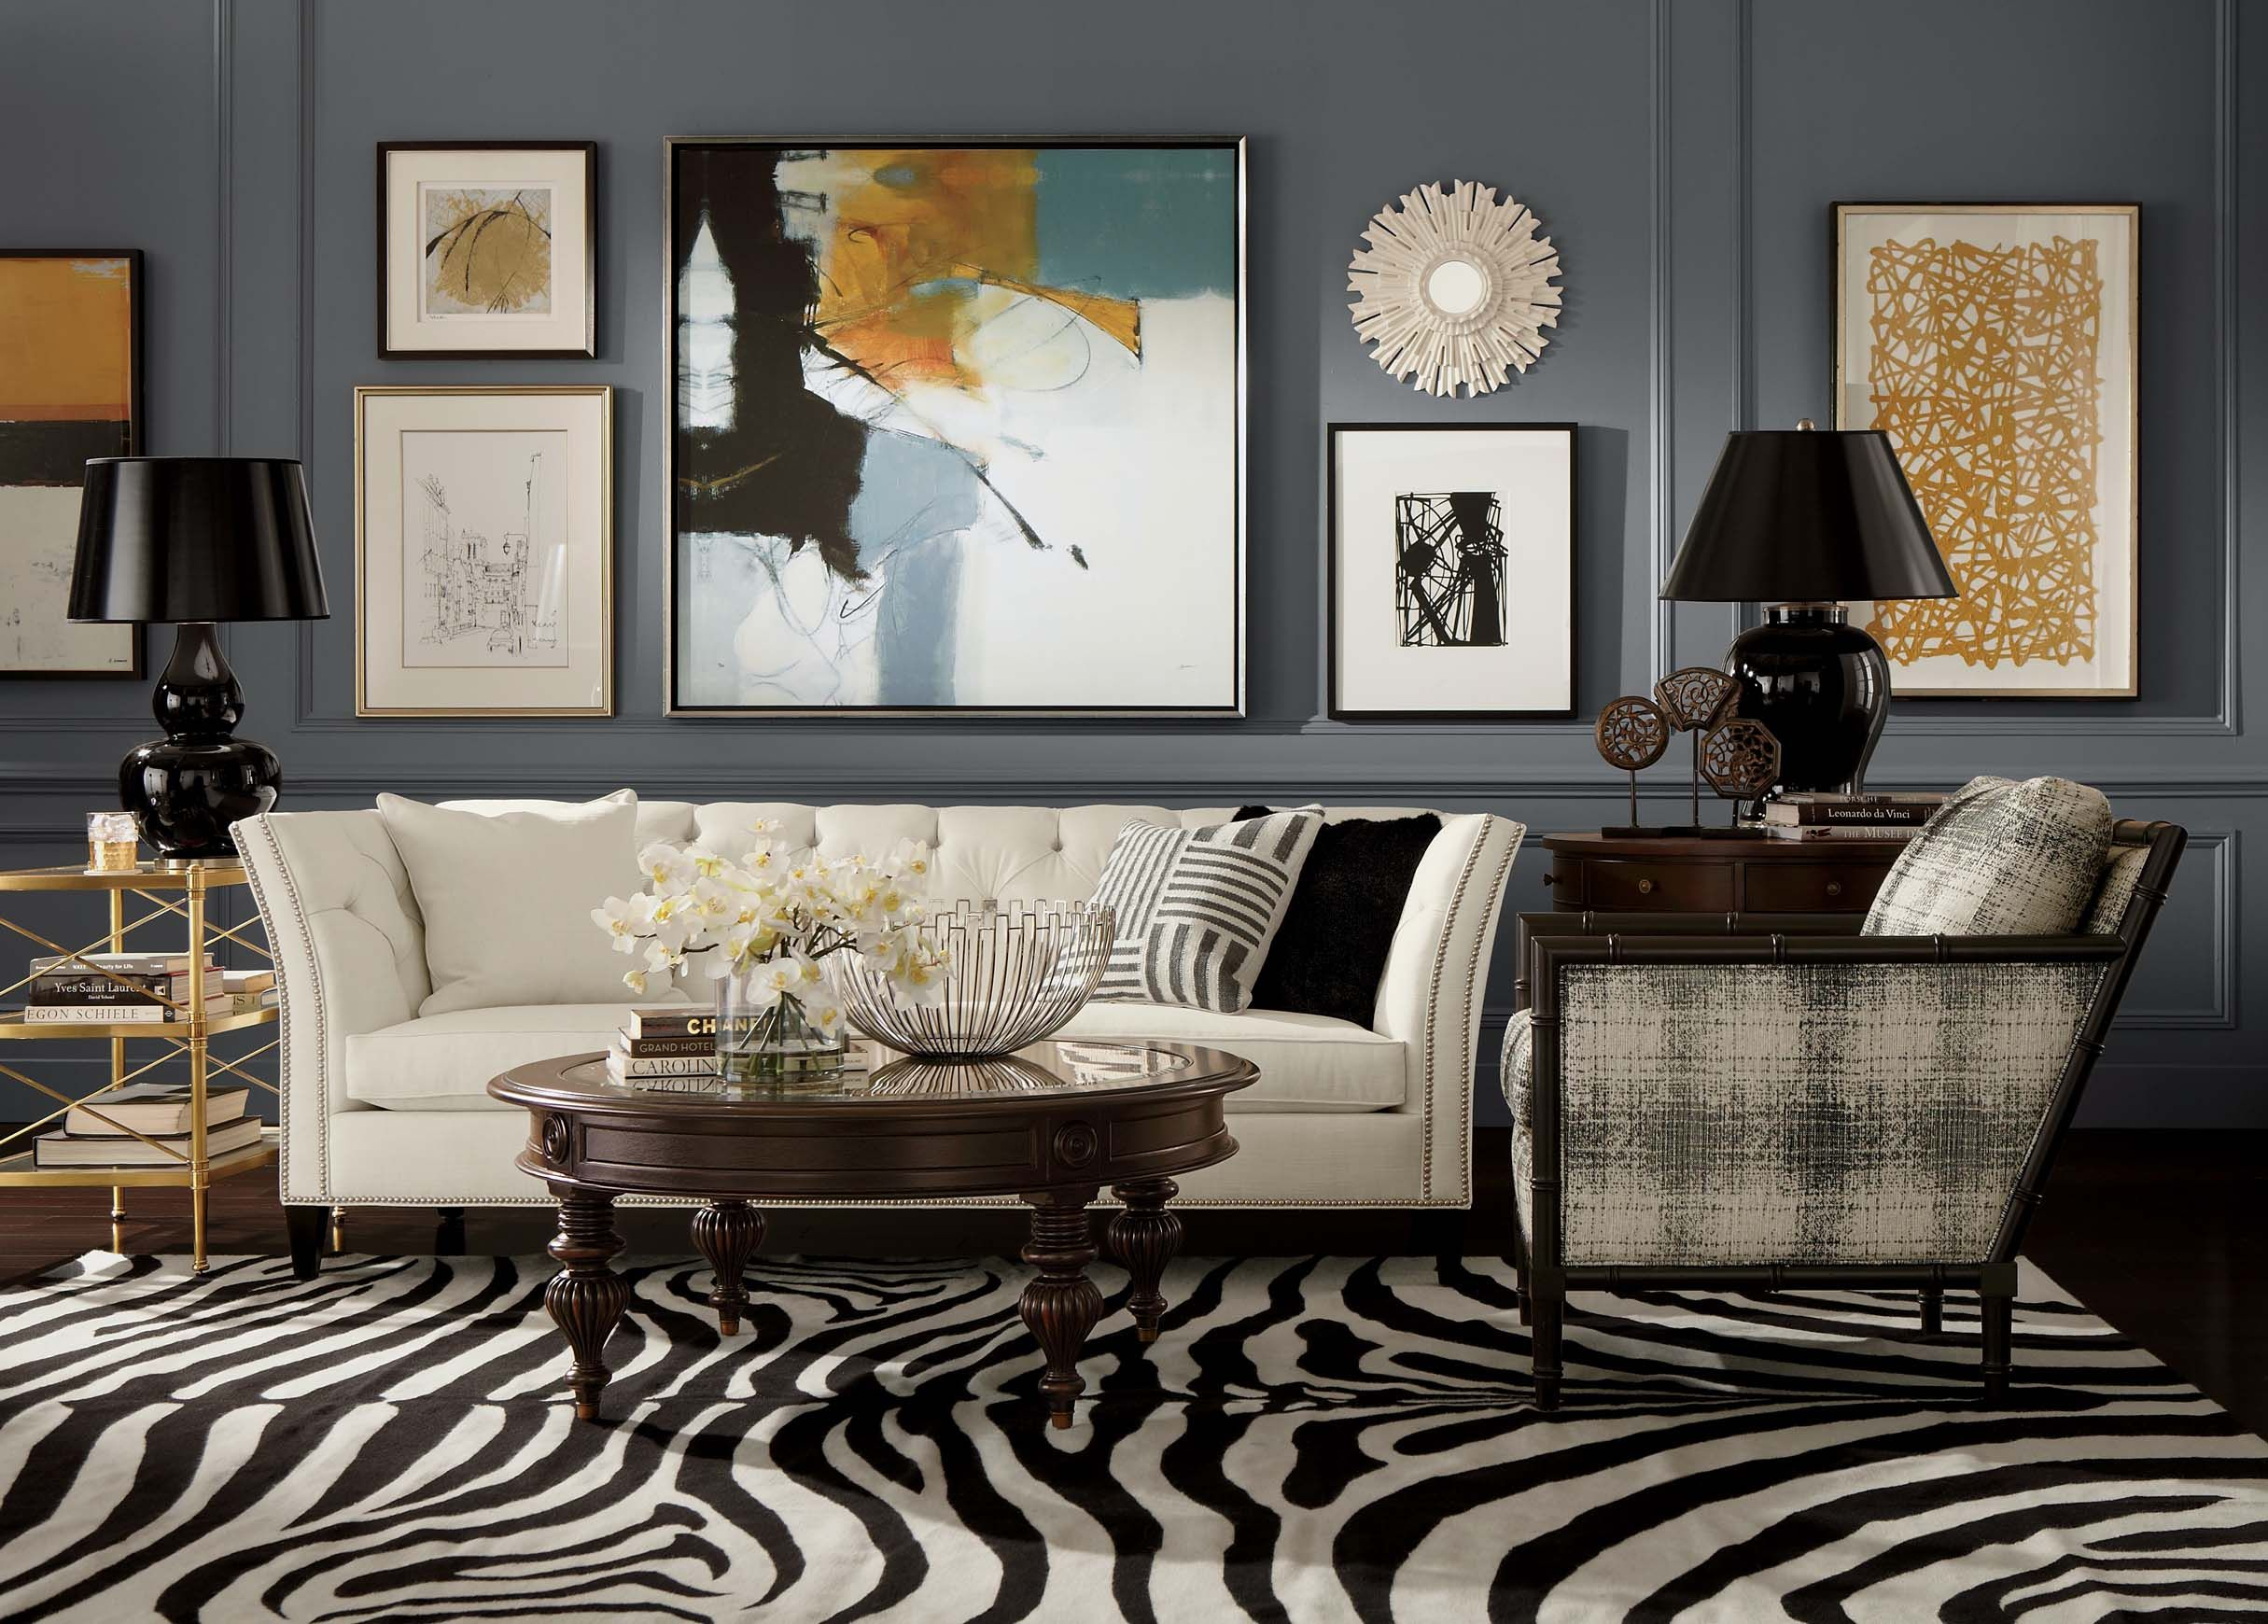 this ethan allen zebra rug in expresso ivory gives this room some